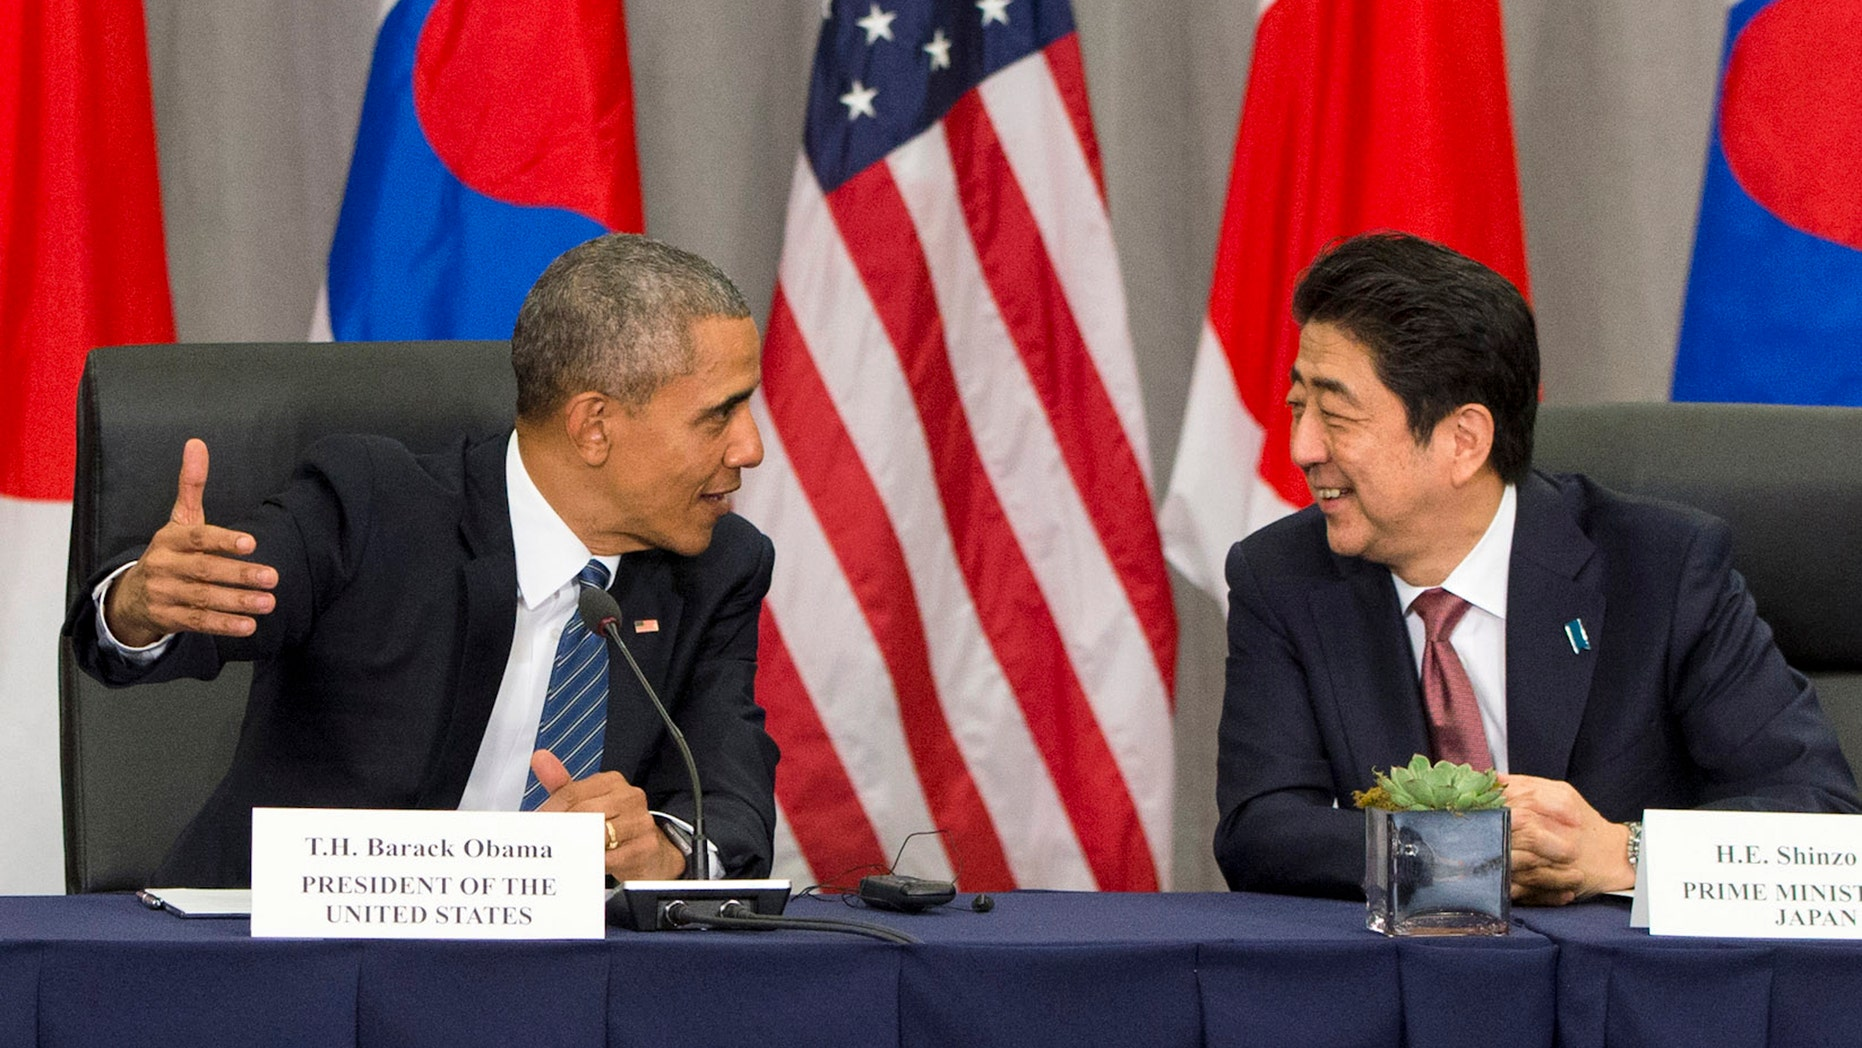 FILE - March 31, 2016: President Obama speaks with Japanese Prime Minister Shinzo Abe during their meeting at the Nuclear Security Summit in Washington. (AP Photo/Jacquelyn Martin)